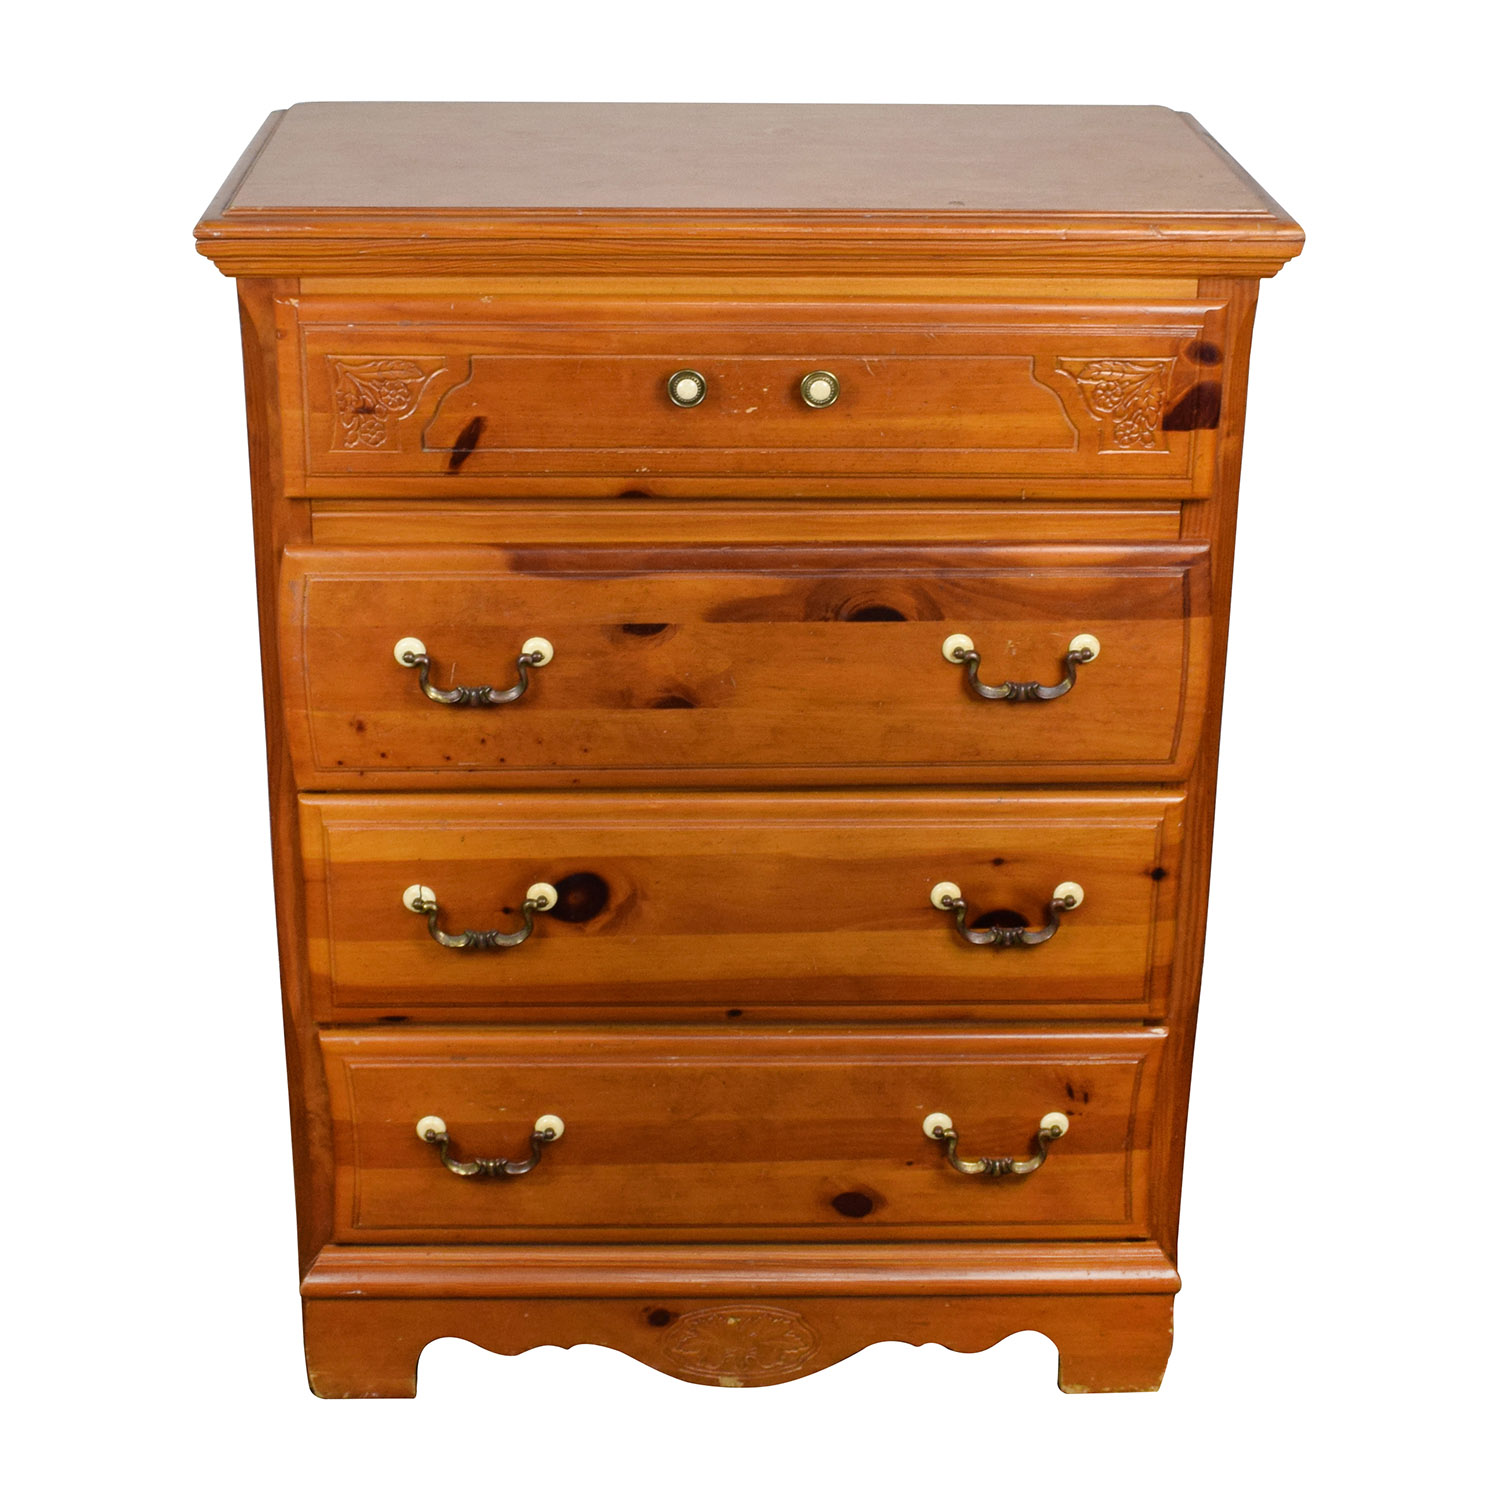 Bassett Bassett Four-Drawer Chest Dresser price